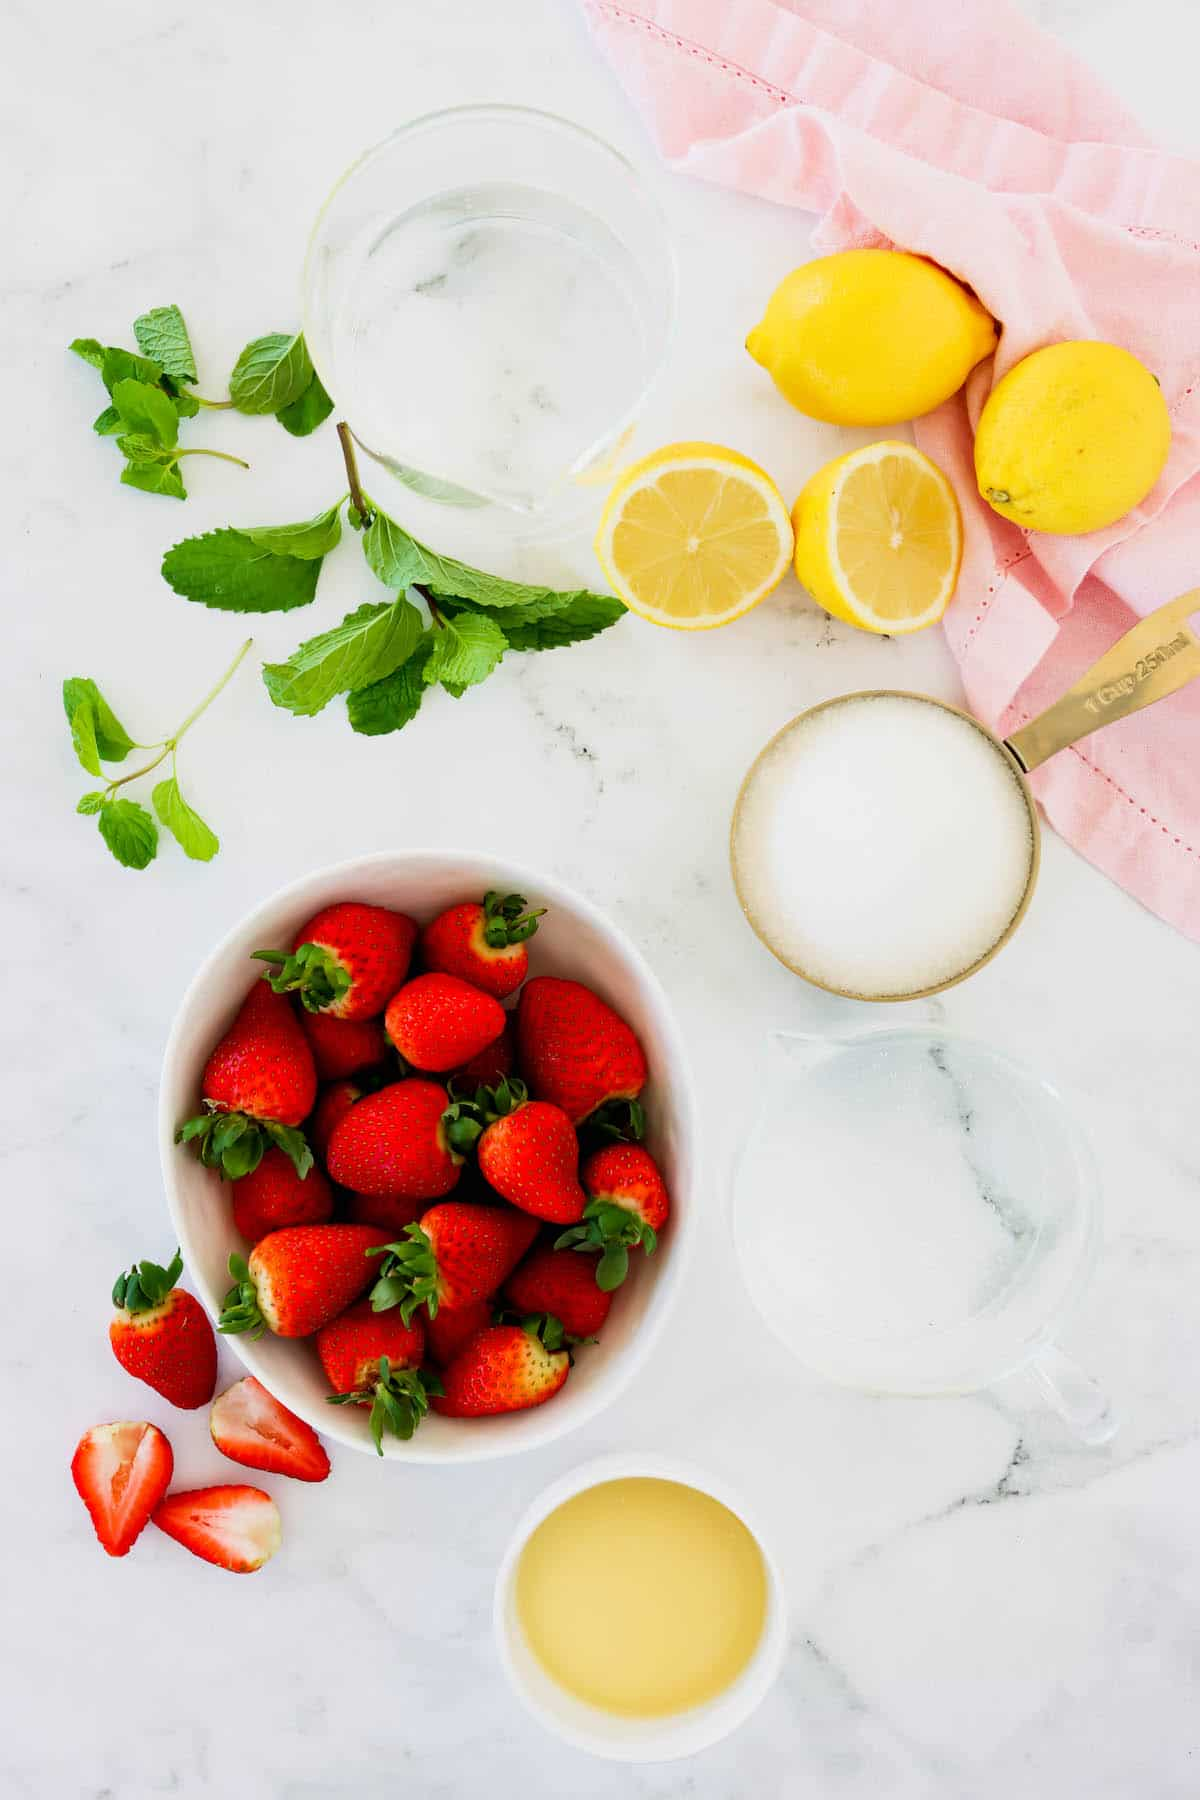 Overhead view of fresh strawberries in a bowl, a measuring cup of sugar and fresh lemons